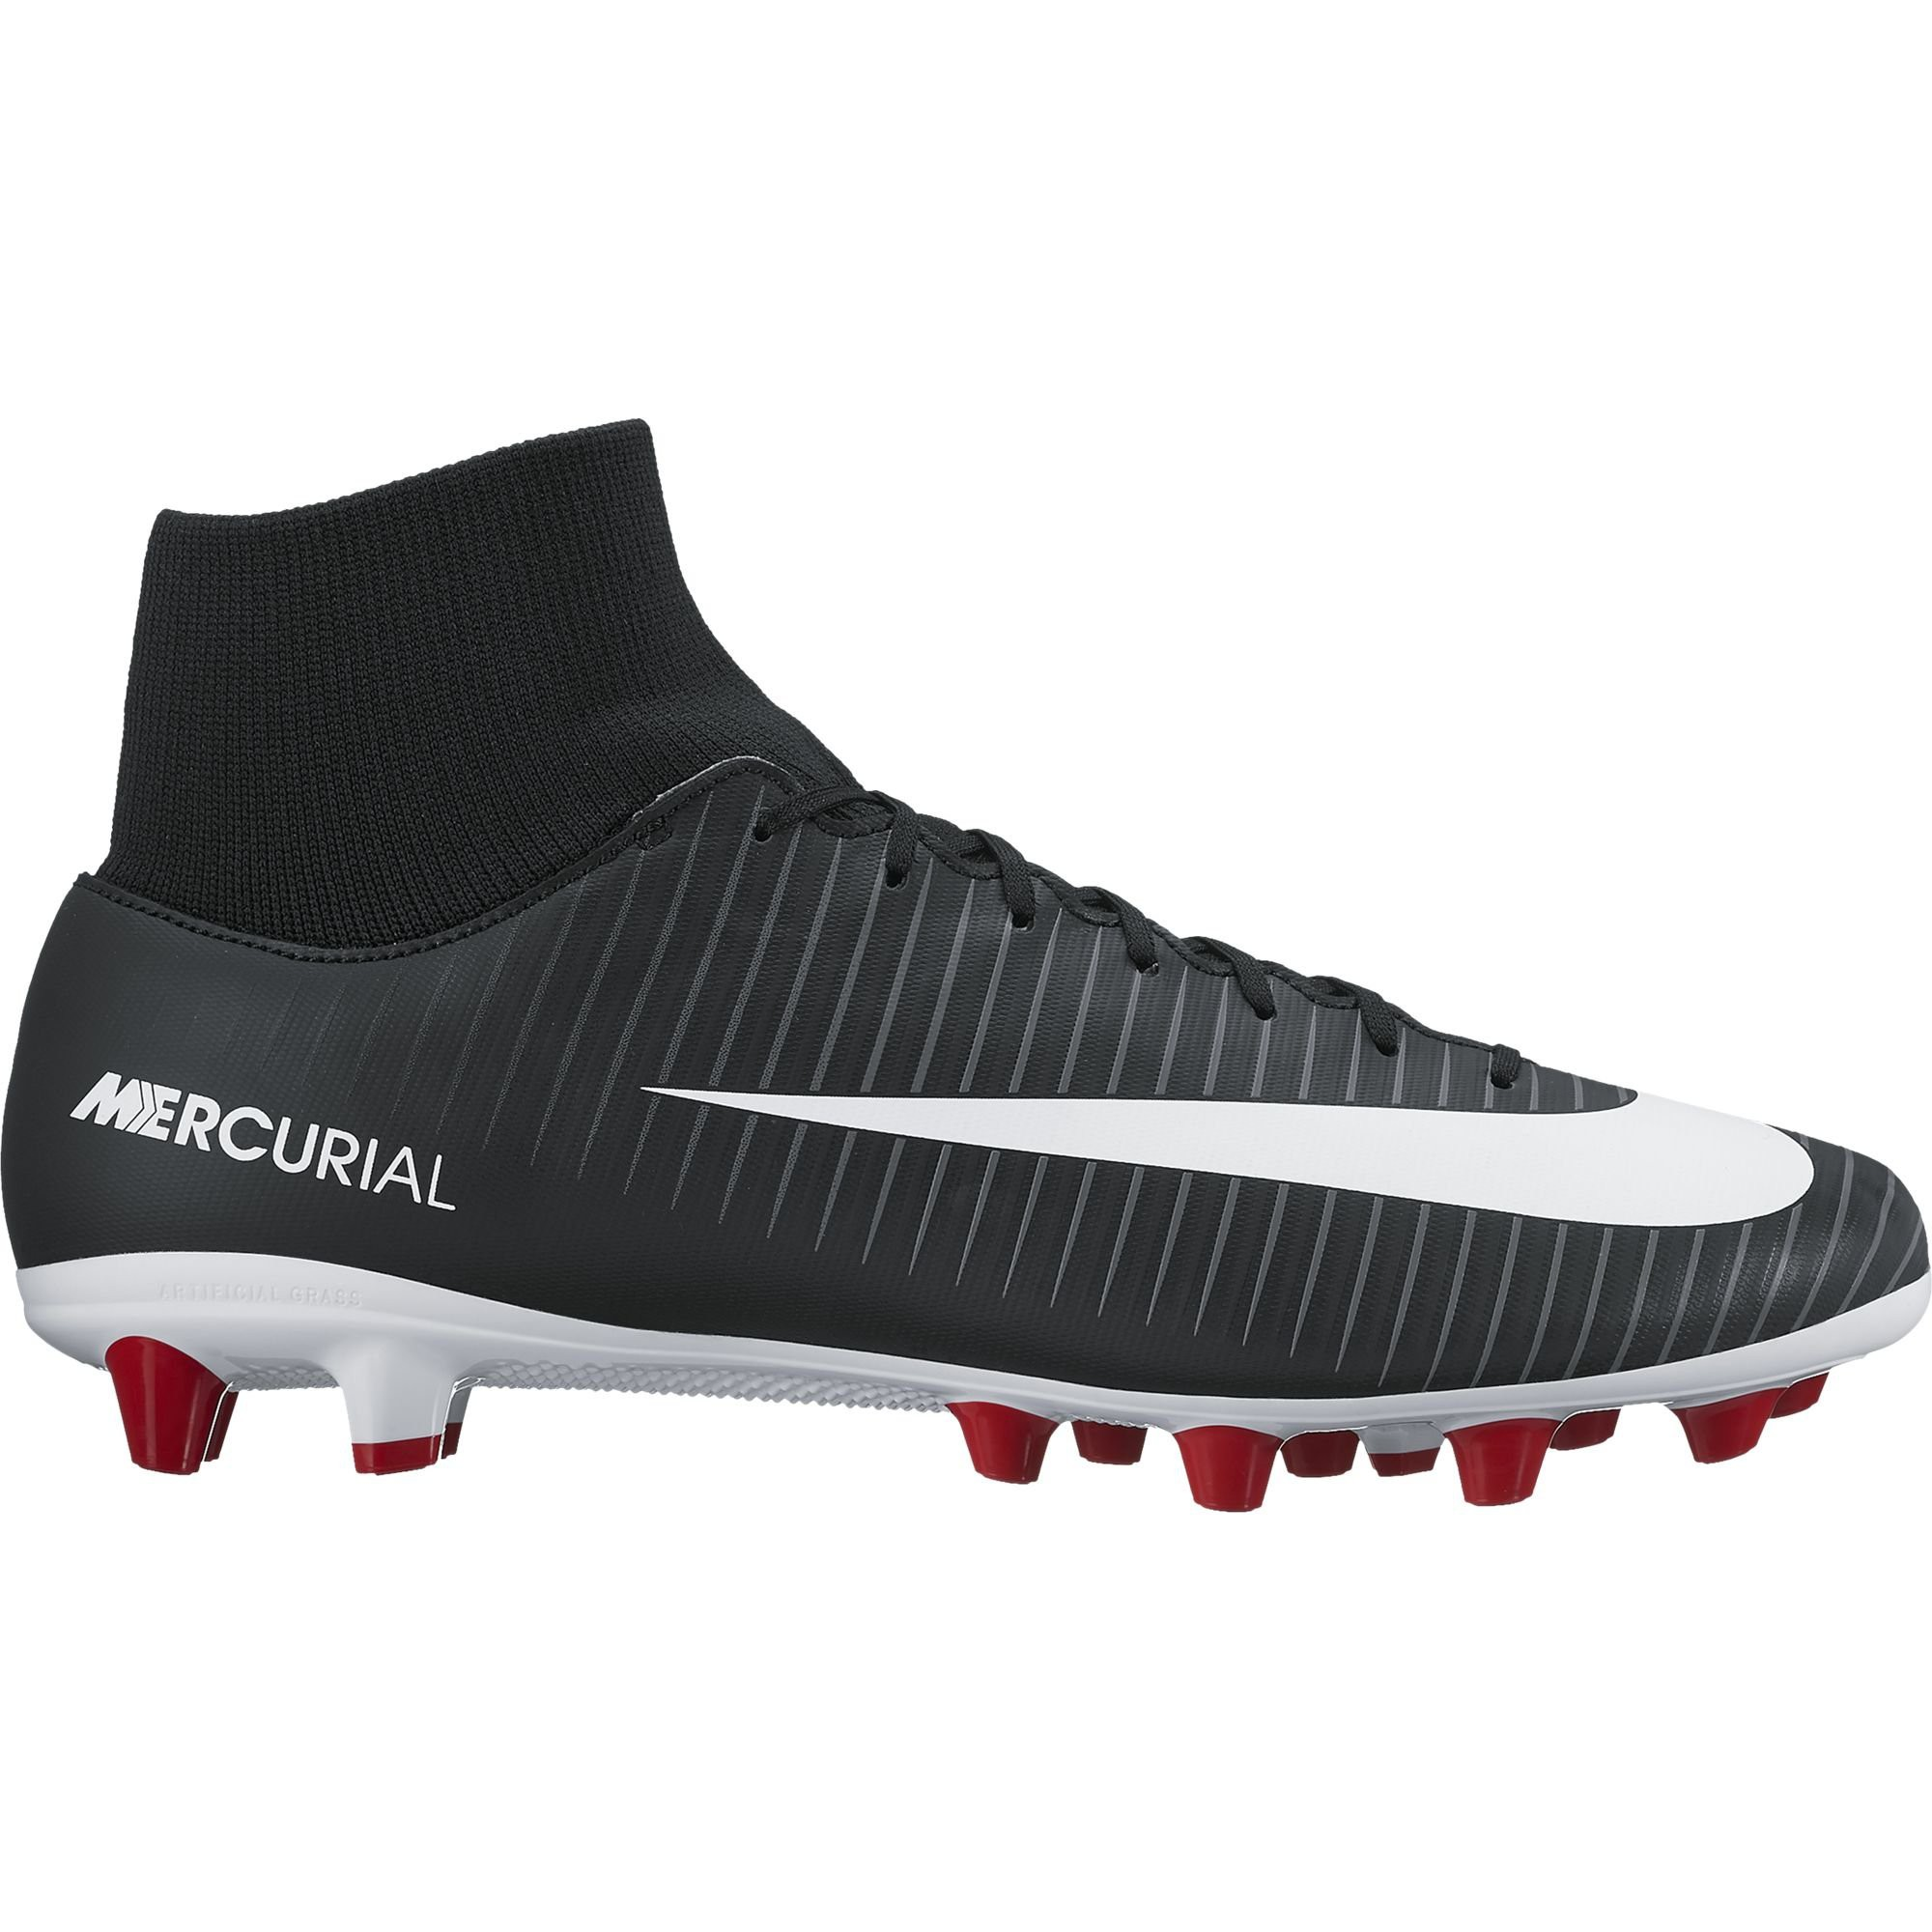 6 Chaussures Victory Nike Df Mercurial Agpro Noir 20172018 4jcL3A5Rq